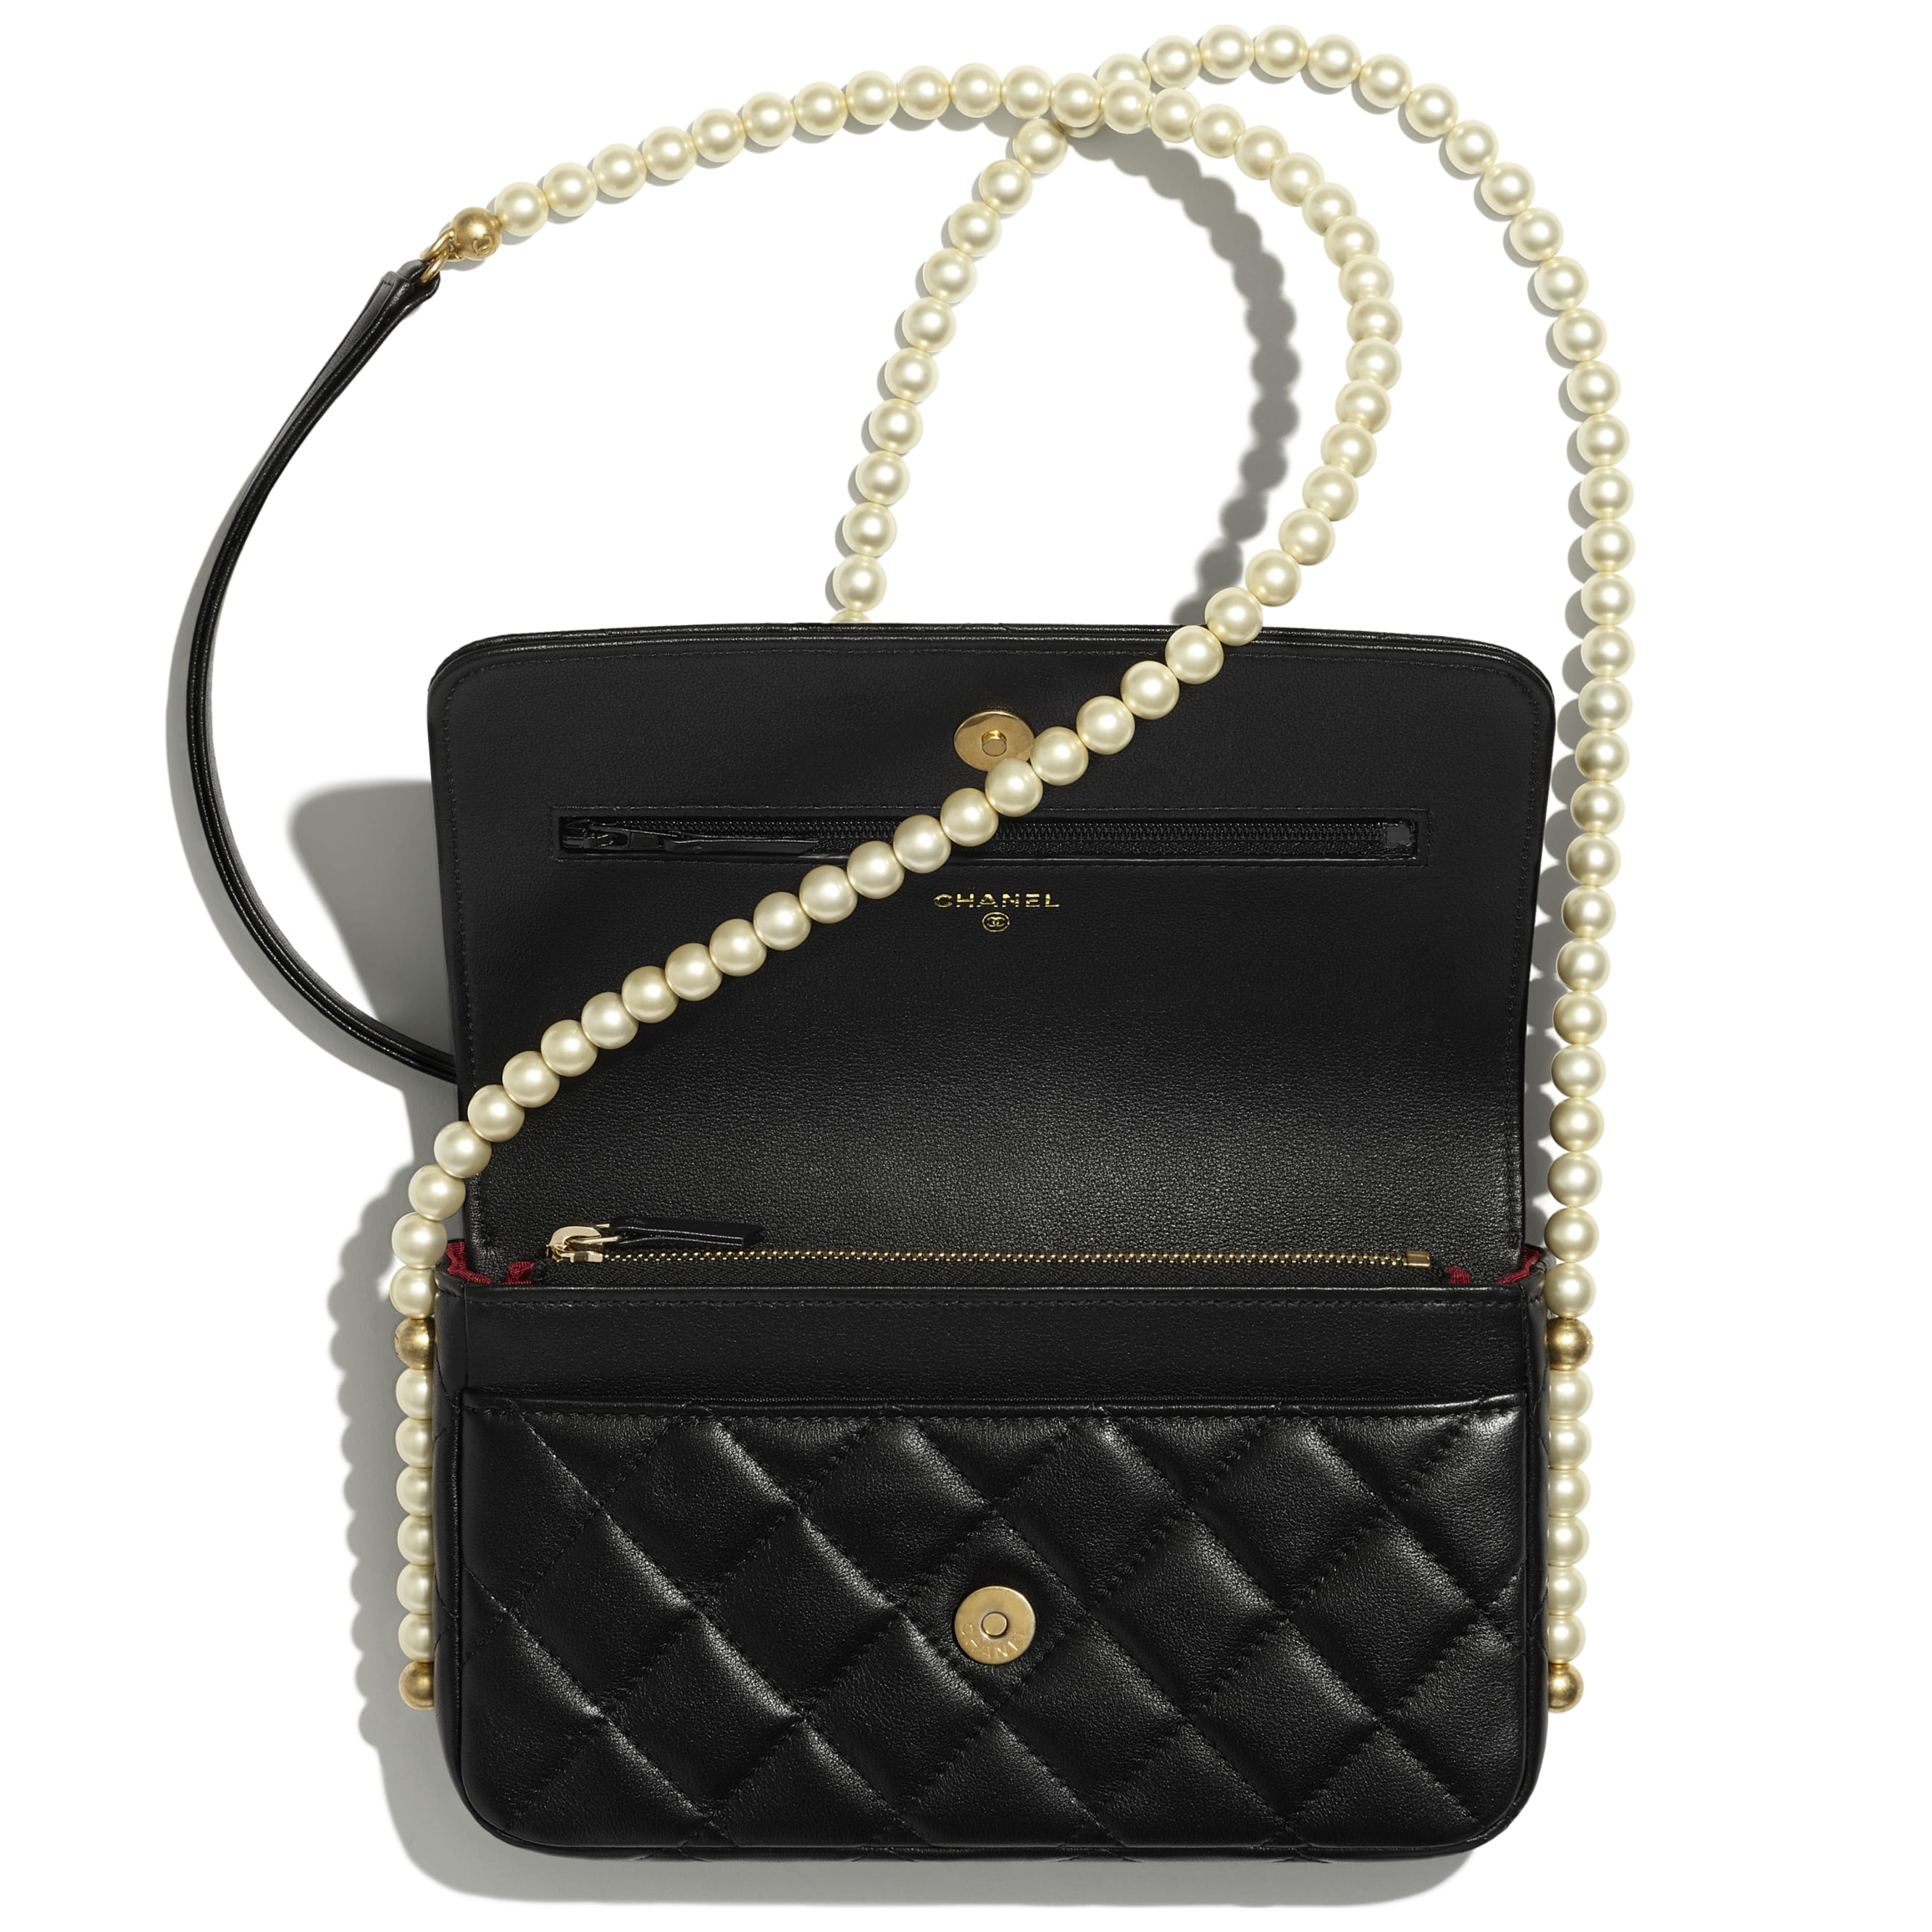 Wallet On Chain - Black - Calfskin, Imitation Pearls & Gold-Tone Metal - CHANEL - Alternative view - see standard sized version